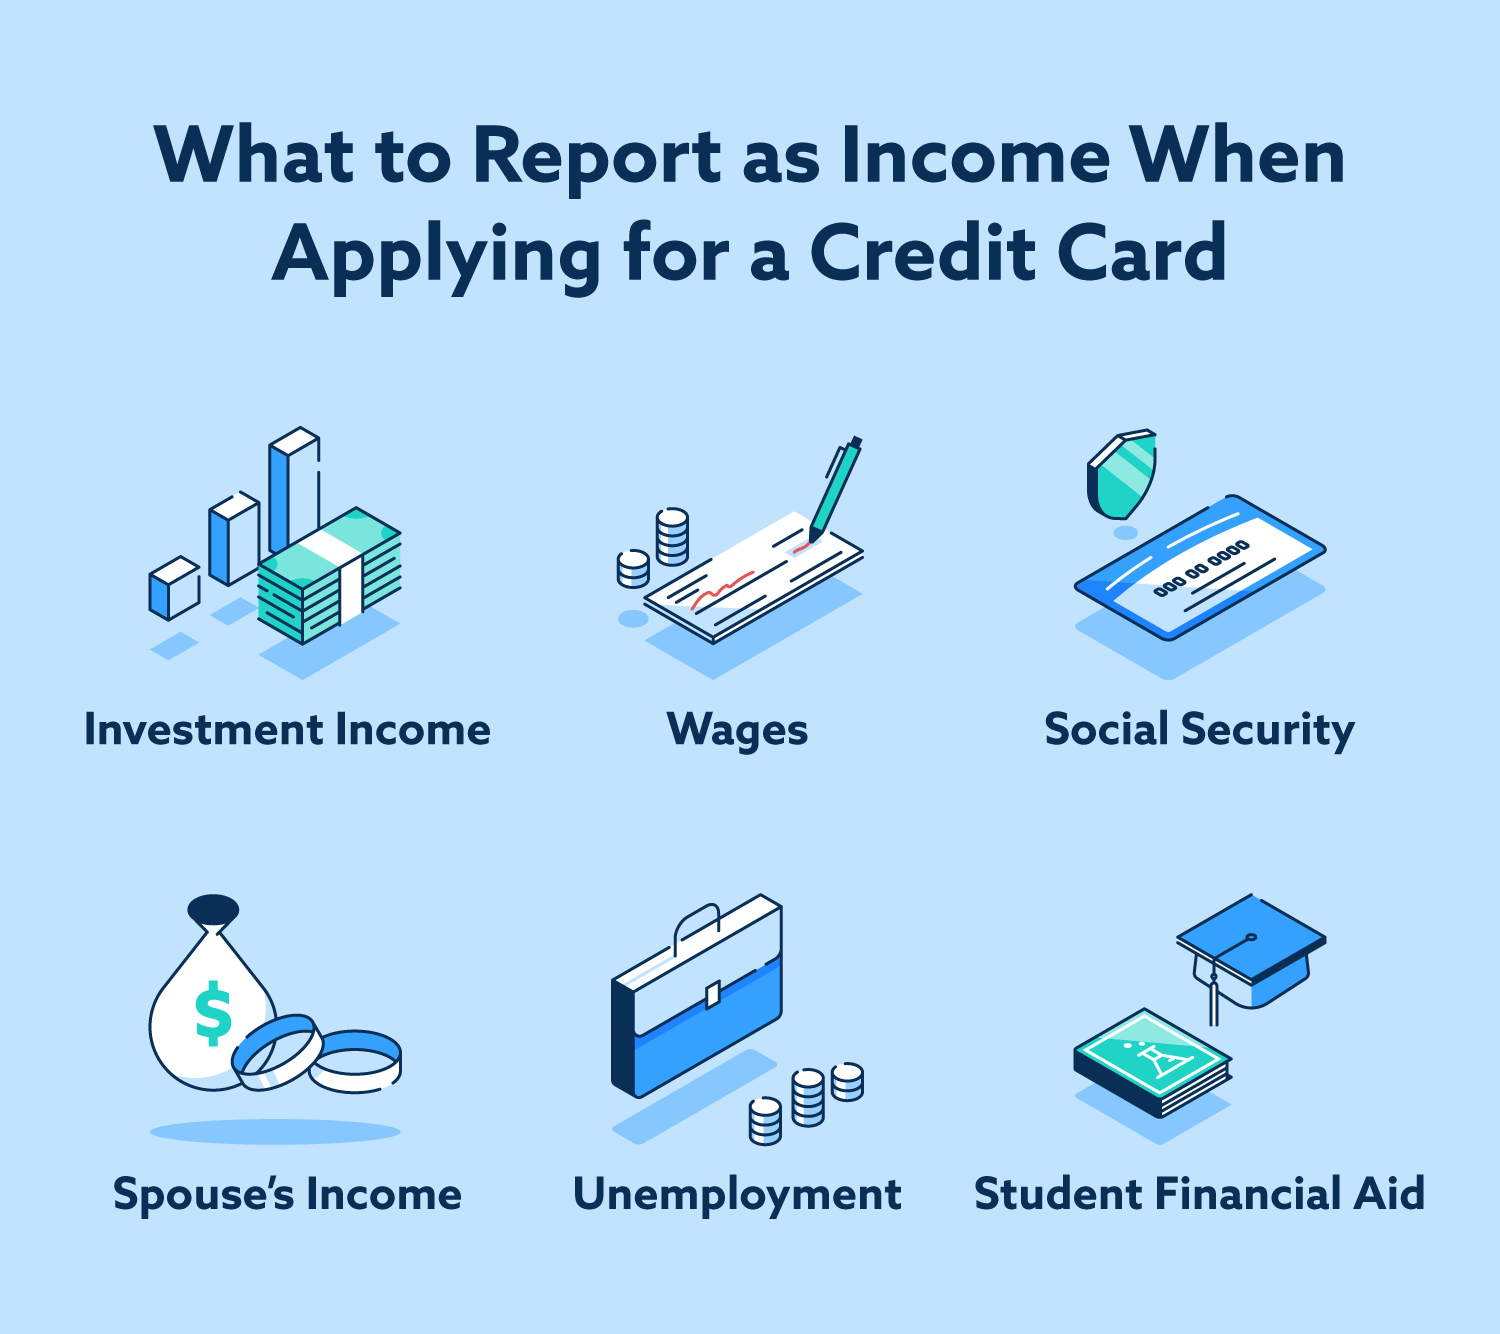 When applying for a credit card, you can report investment income, wages, social security, your spouse's income, unemployment and student financial aid as sources of income.